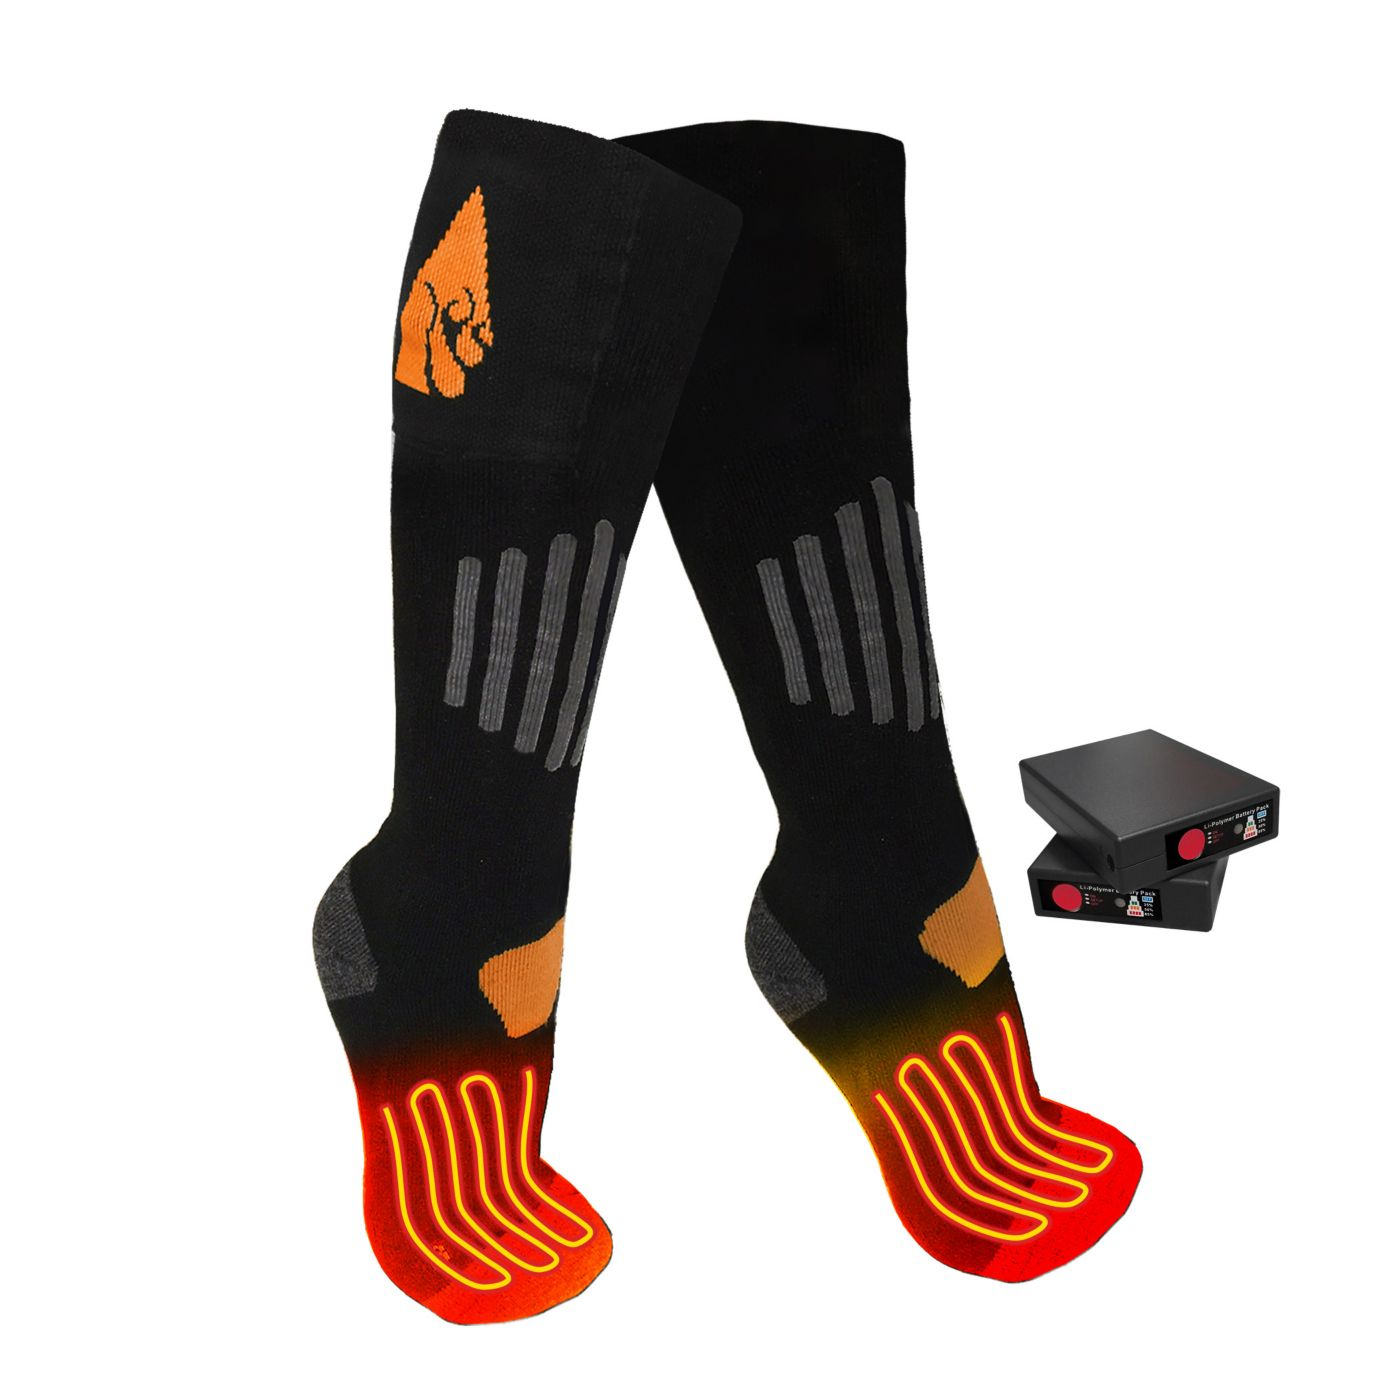 ActionHeat Wool Rechargeable Heated Socks